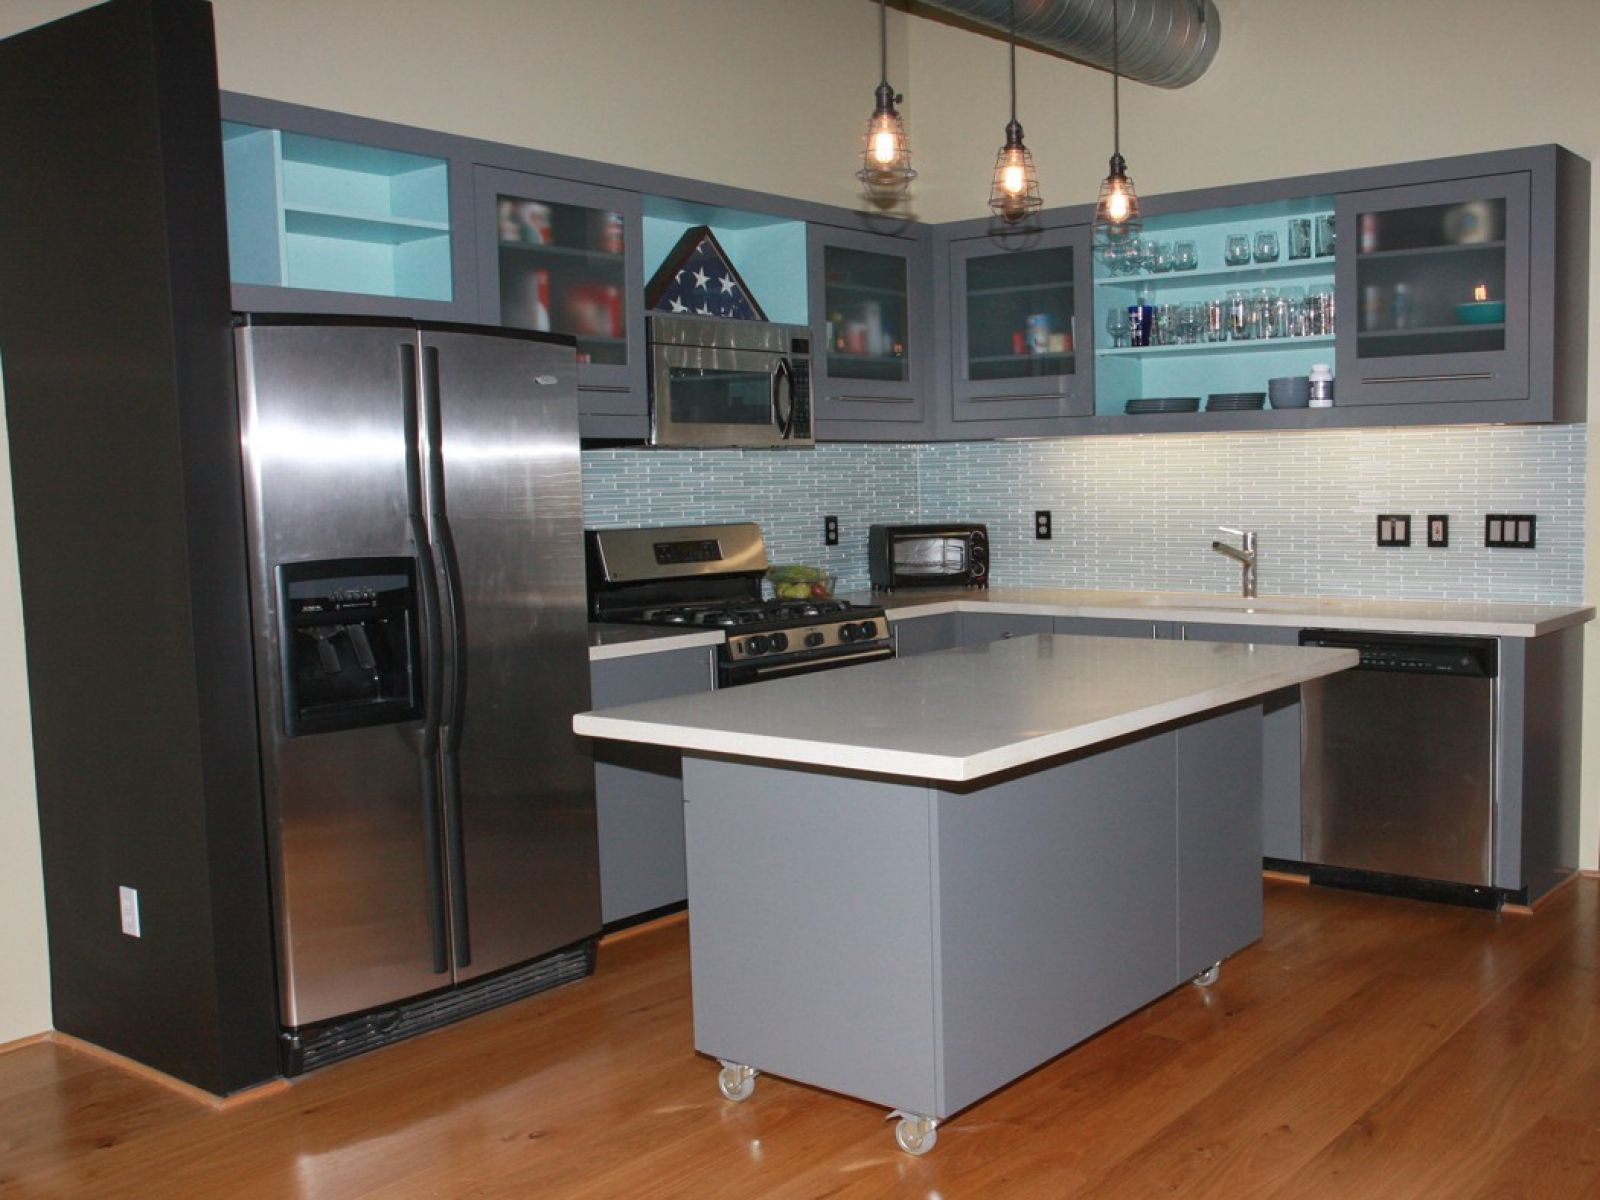 Metal Kitchen Cabinets And Grey Island Completing Open Small Kitchen On Hardwood Flooring